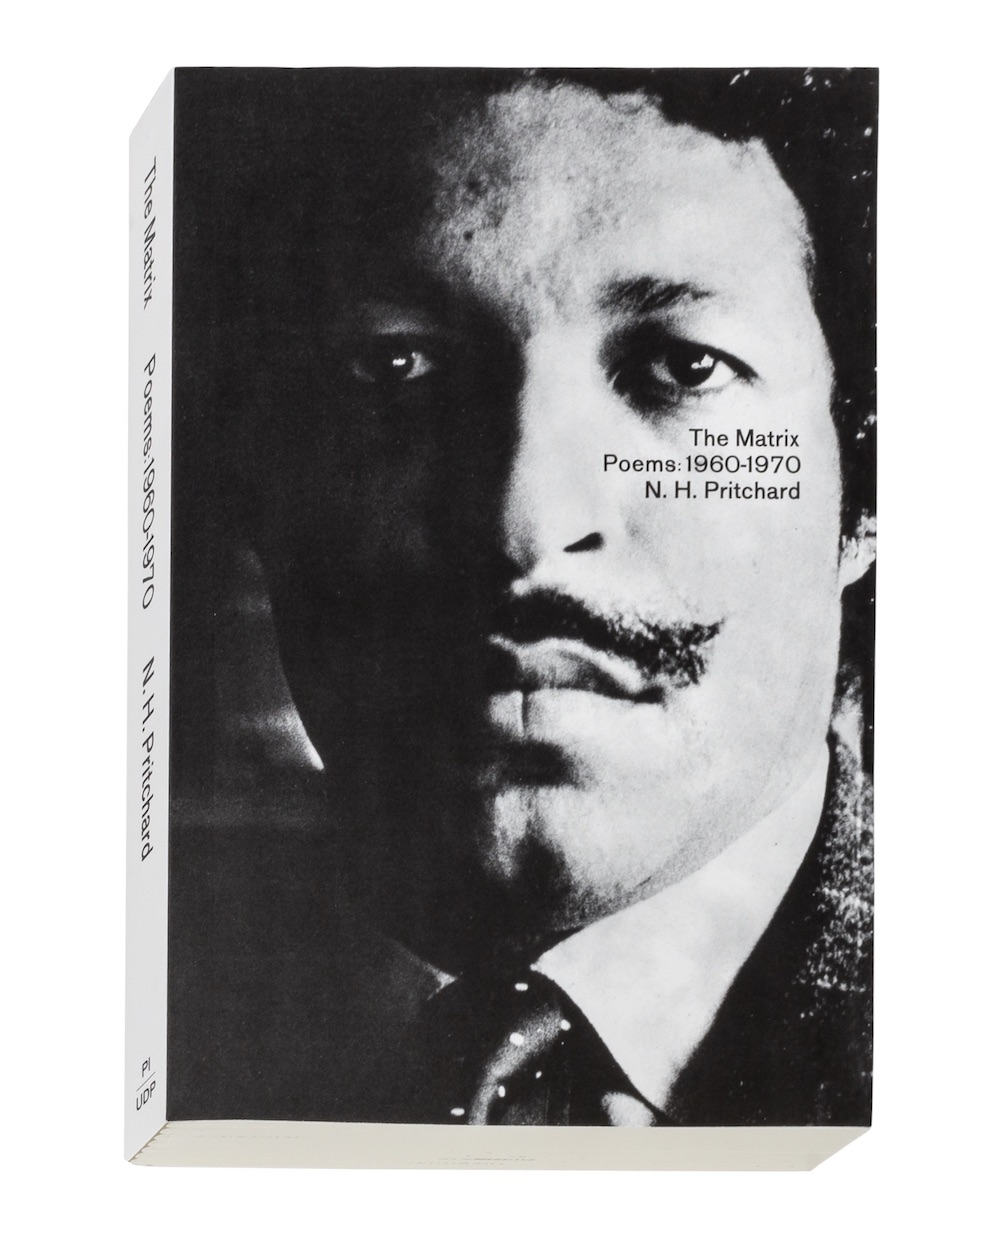 Cover of N.H. Pritchard's The Matrix, 1970 (Primary Information, 2021).